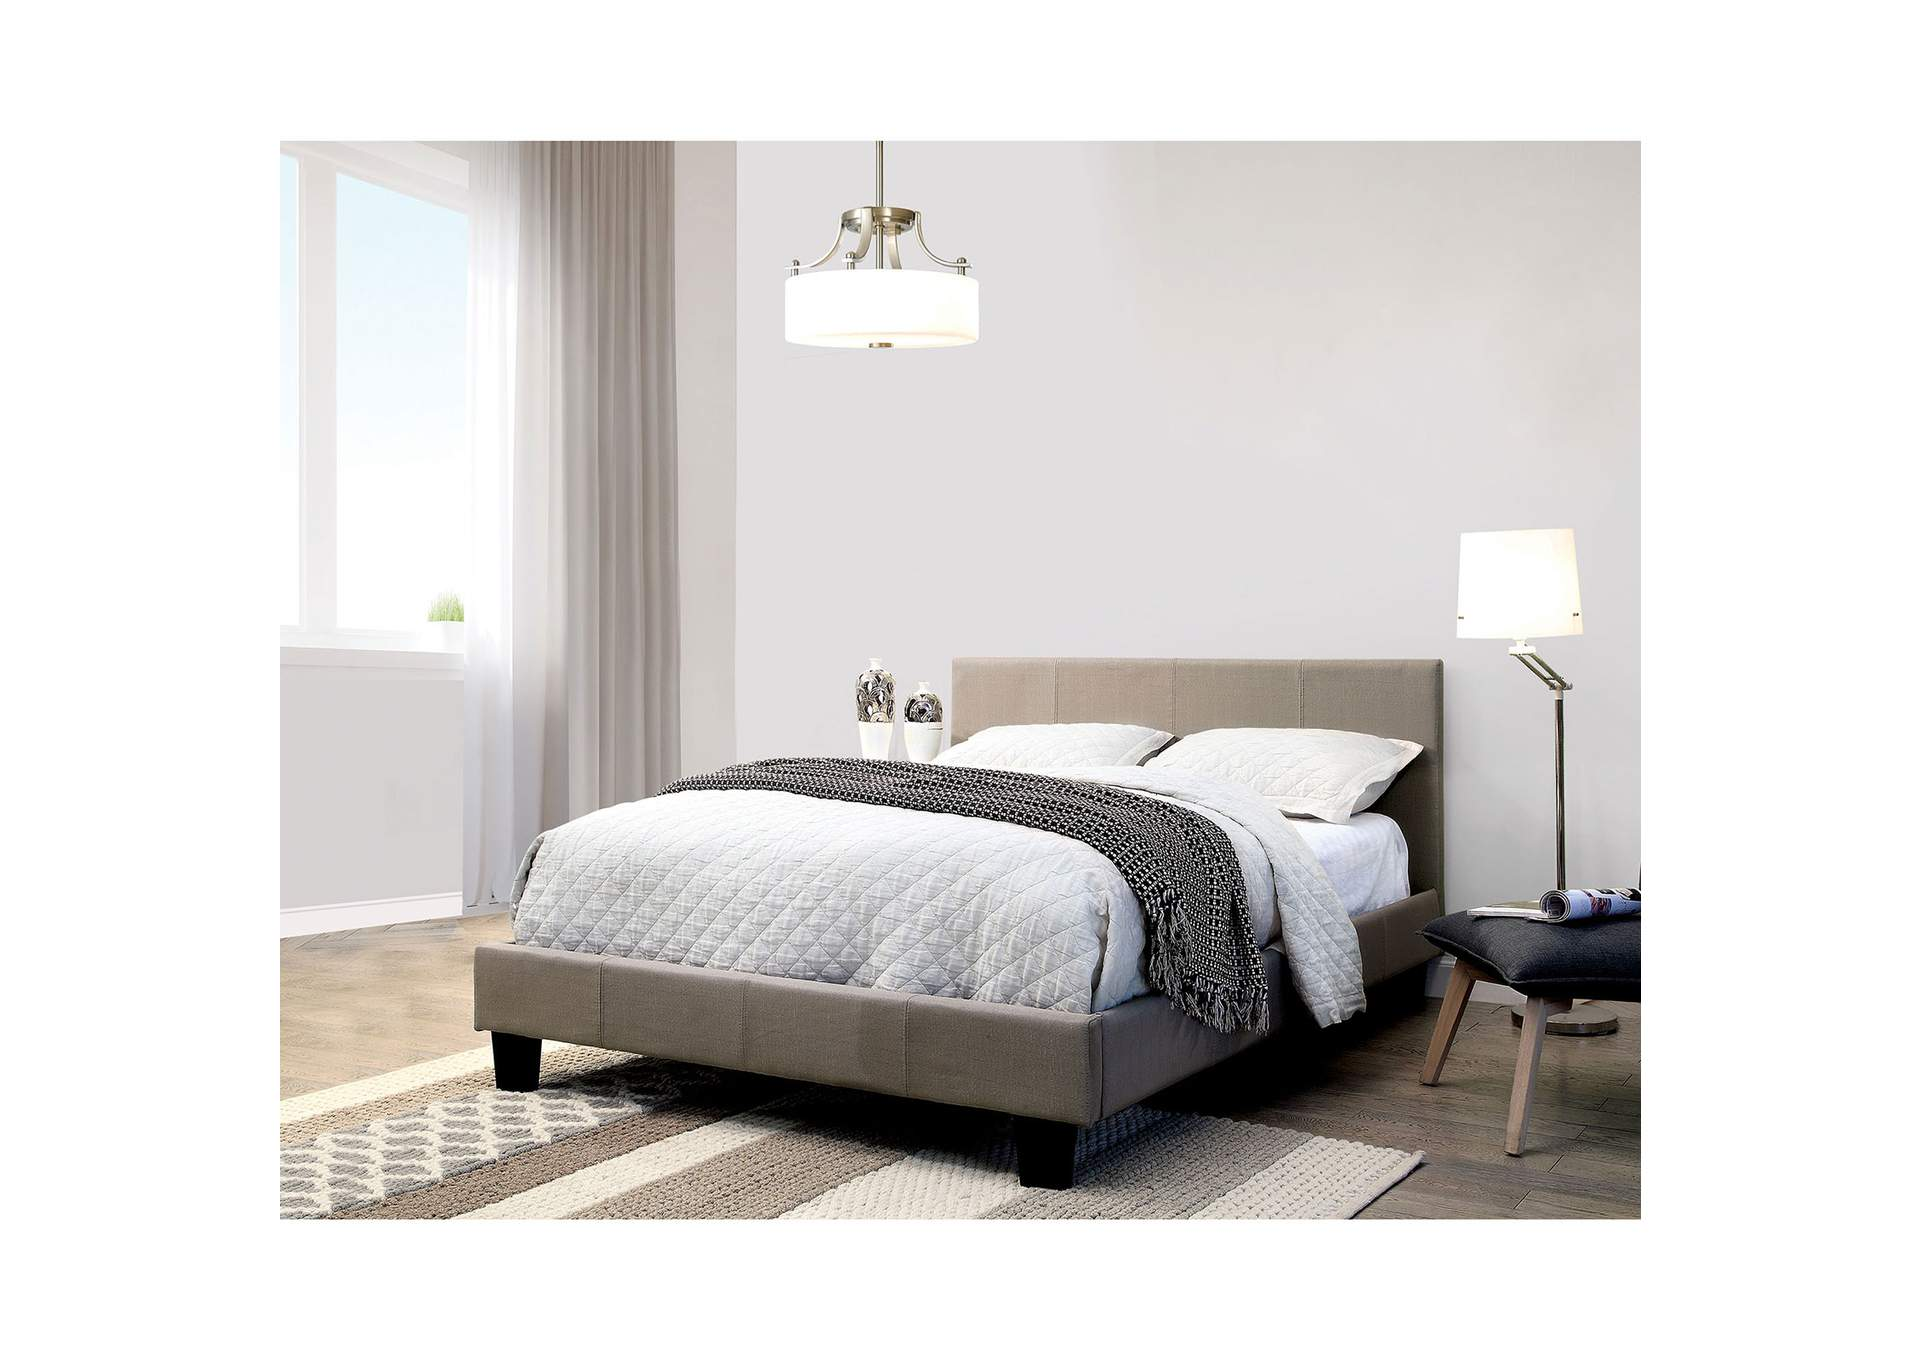 Sims Gray Twin Platform Bed,Furniture of America